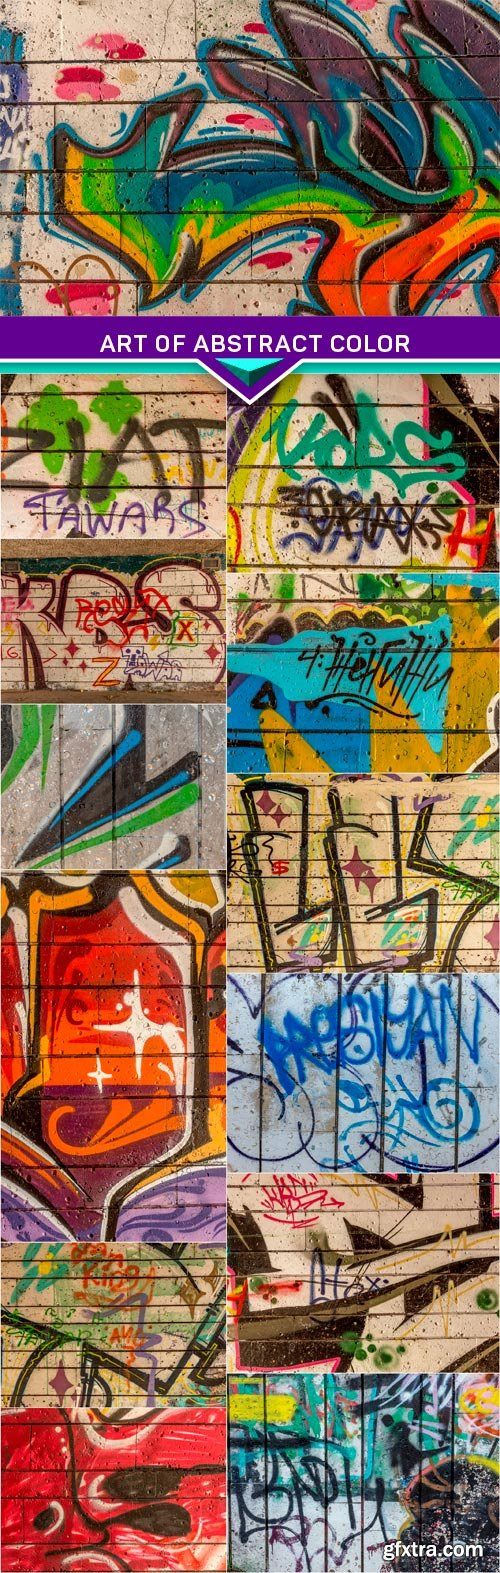 Art of abstract color creative drawing walls of city 13x JPEG